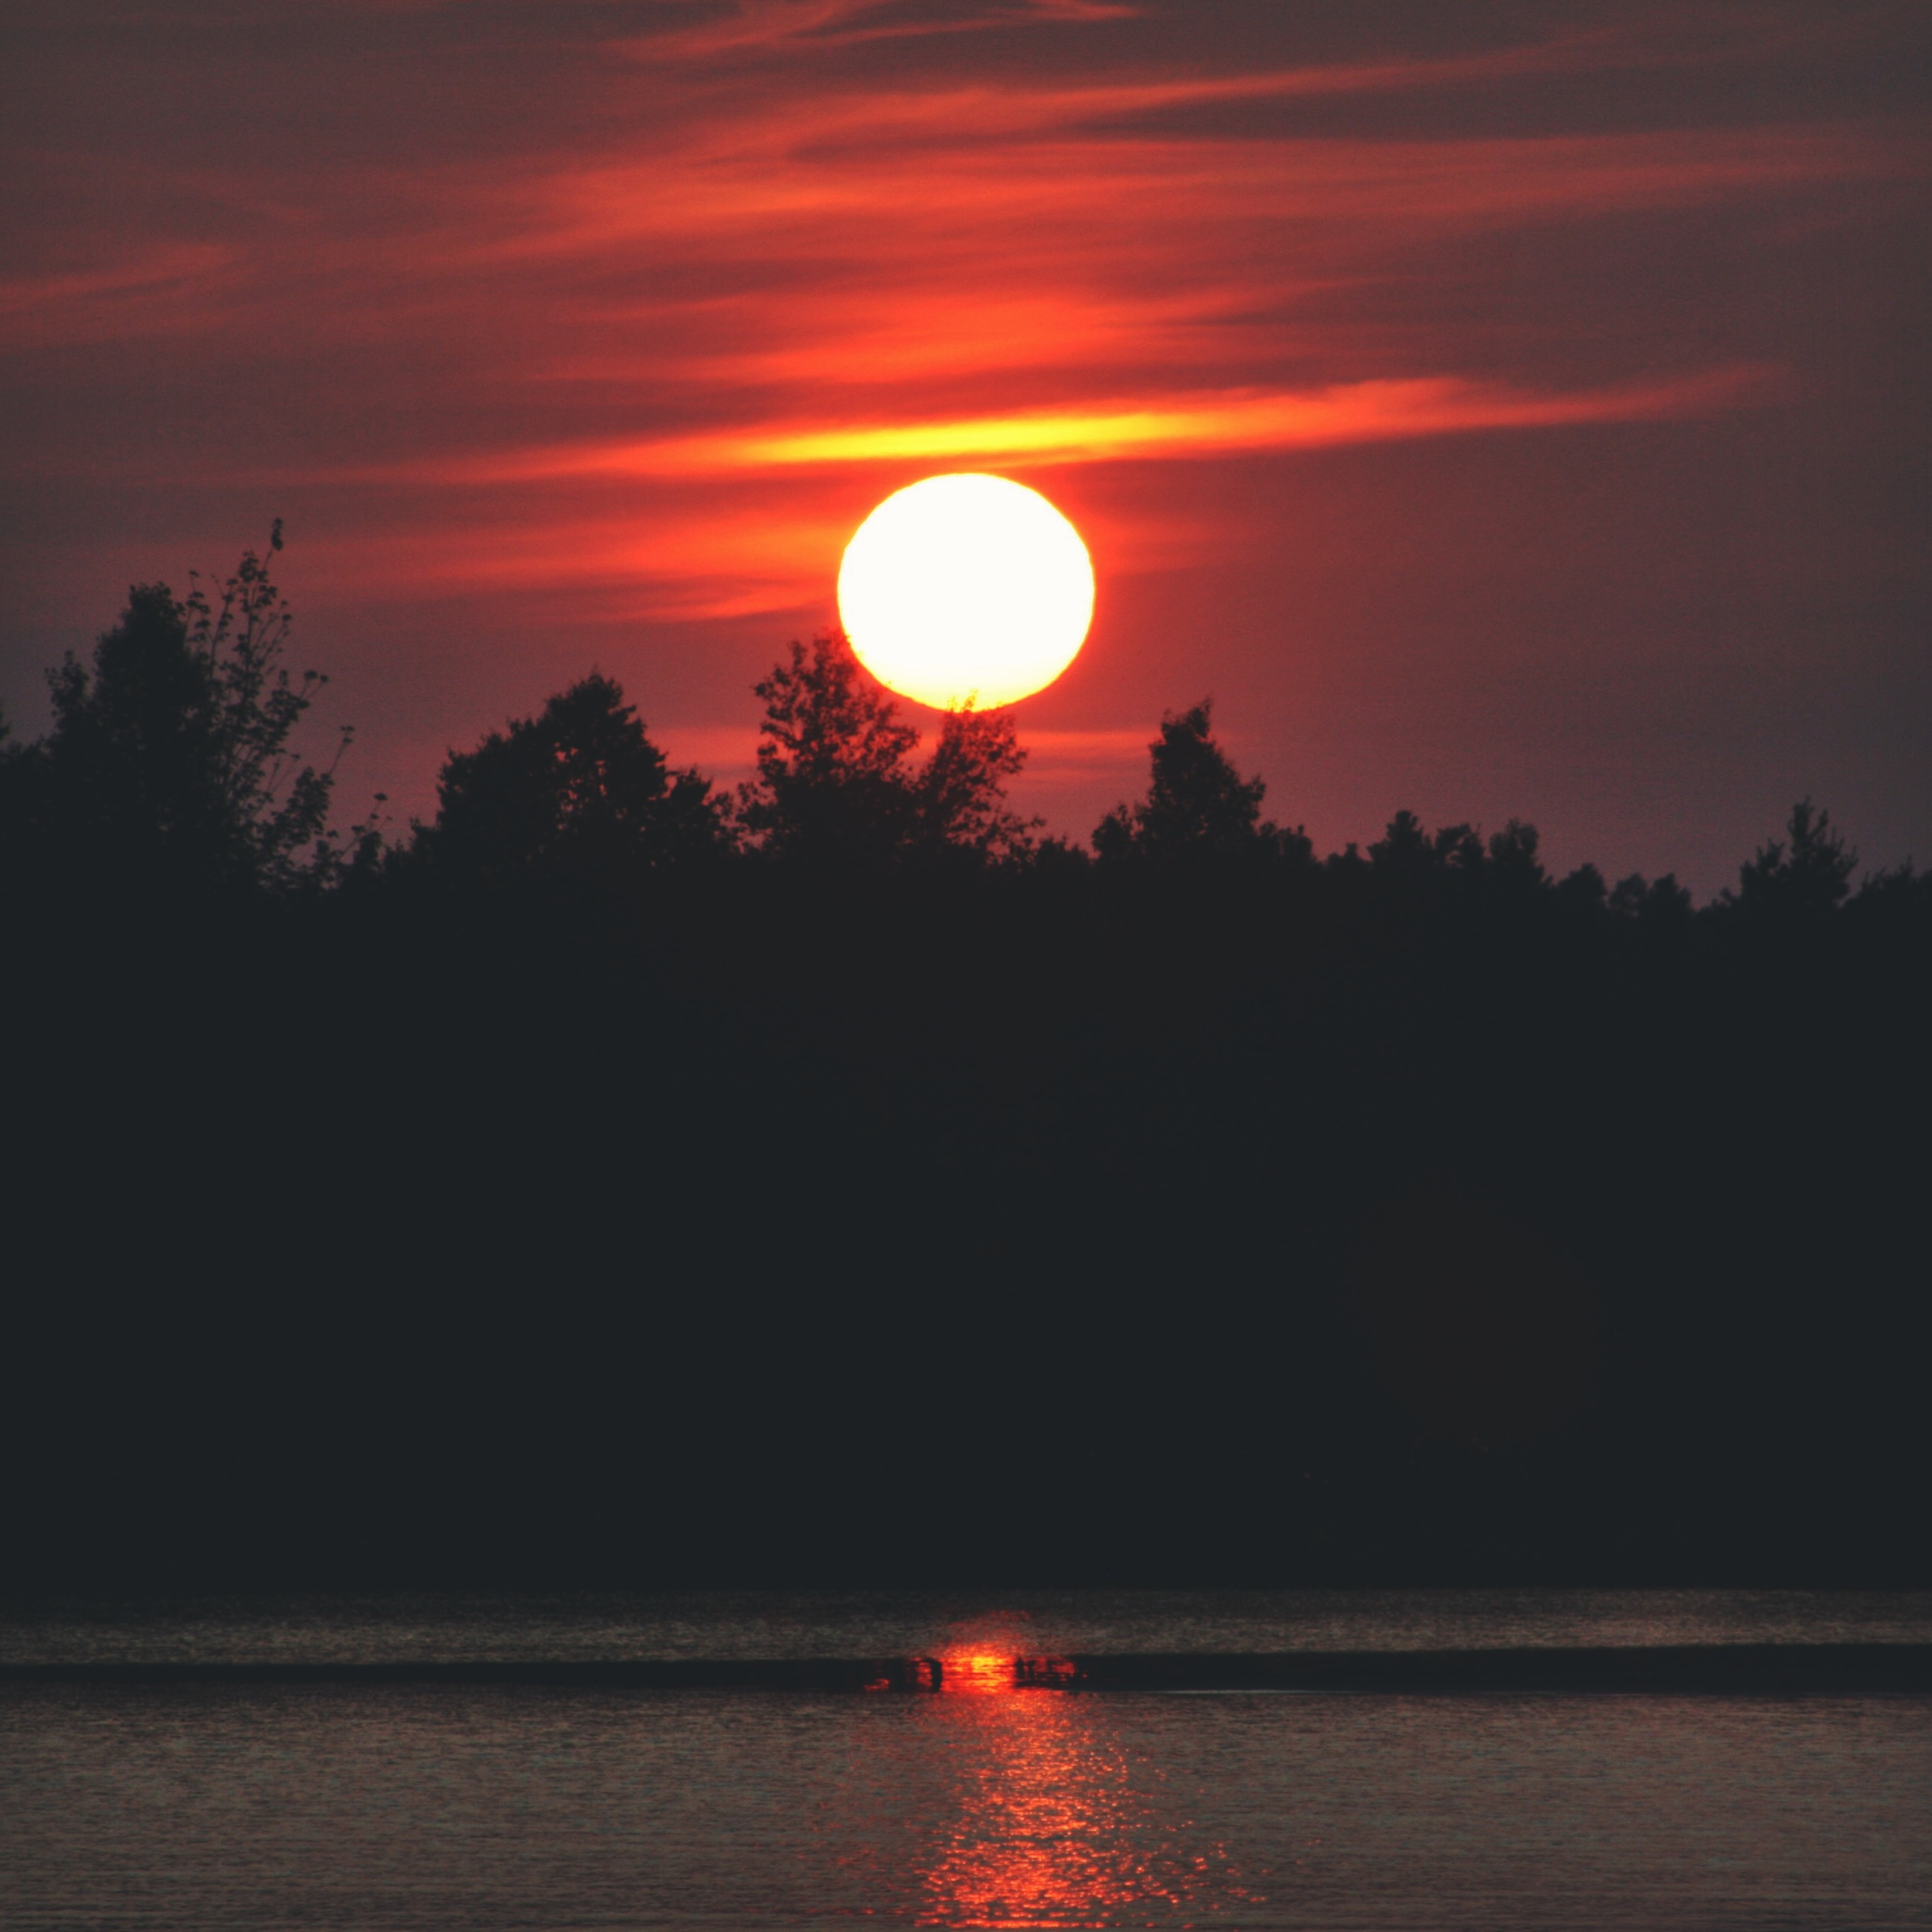 An abnormally beautiful sunset due to the Canadian wildfires happening in the region.